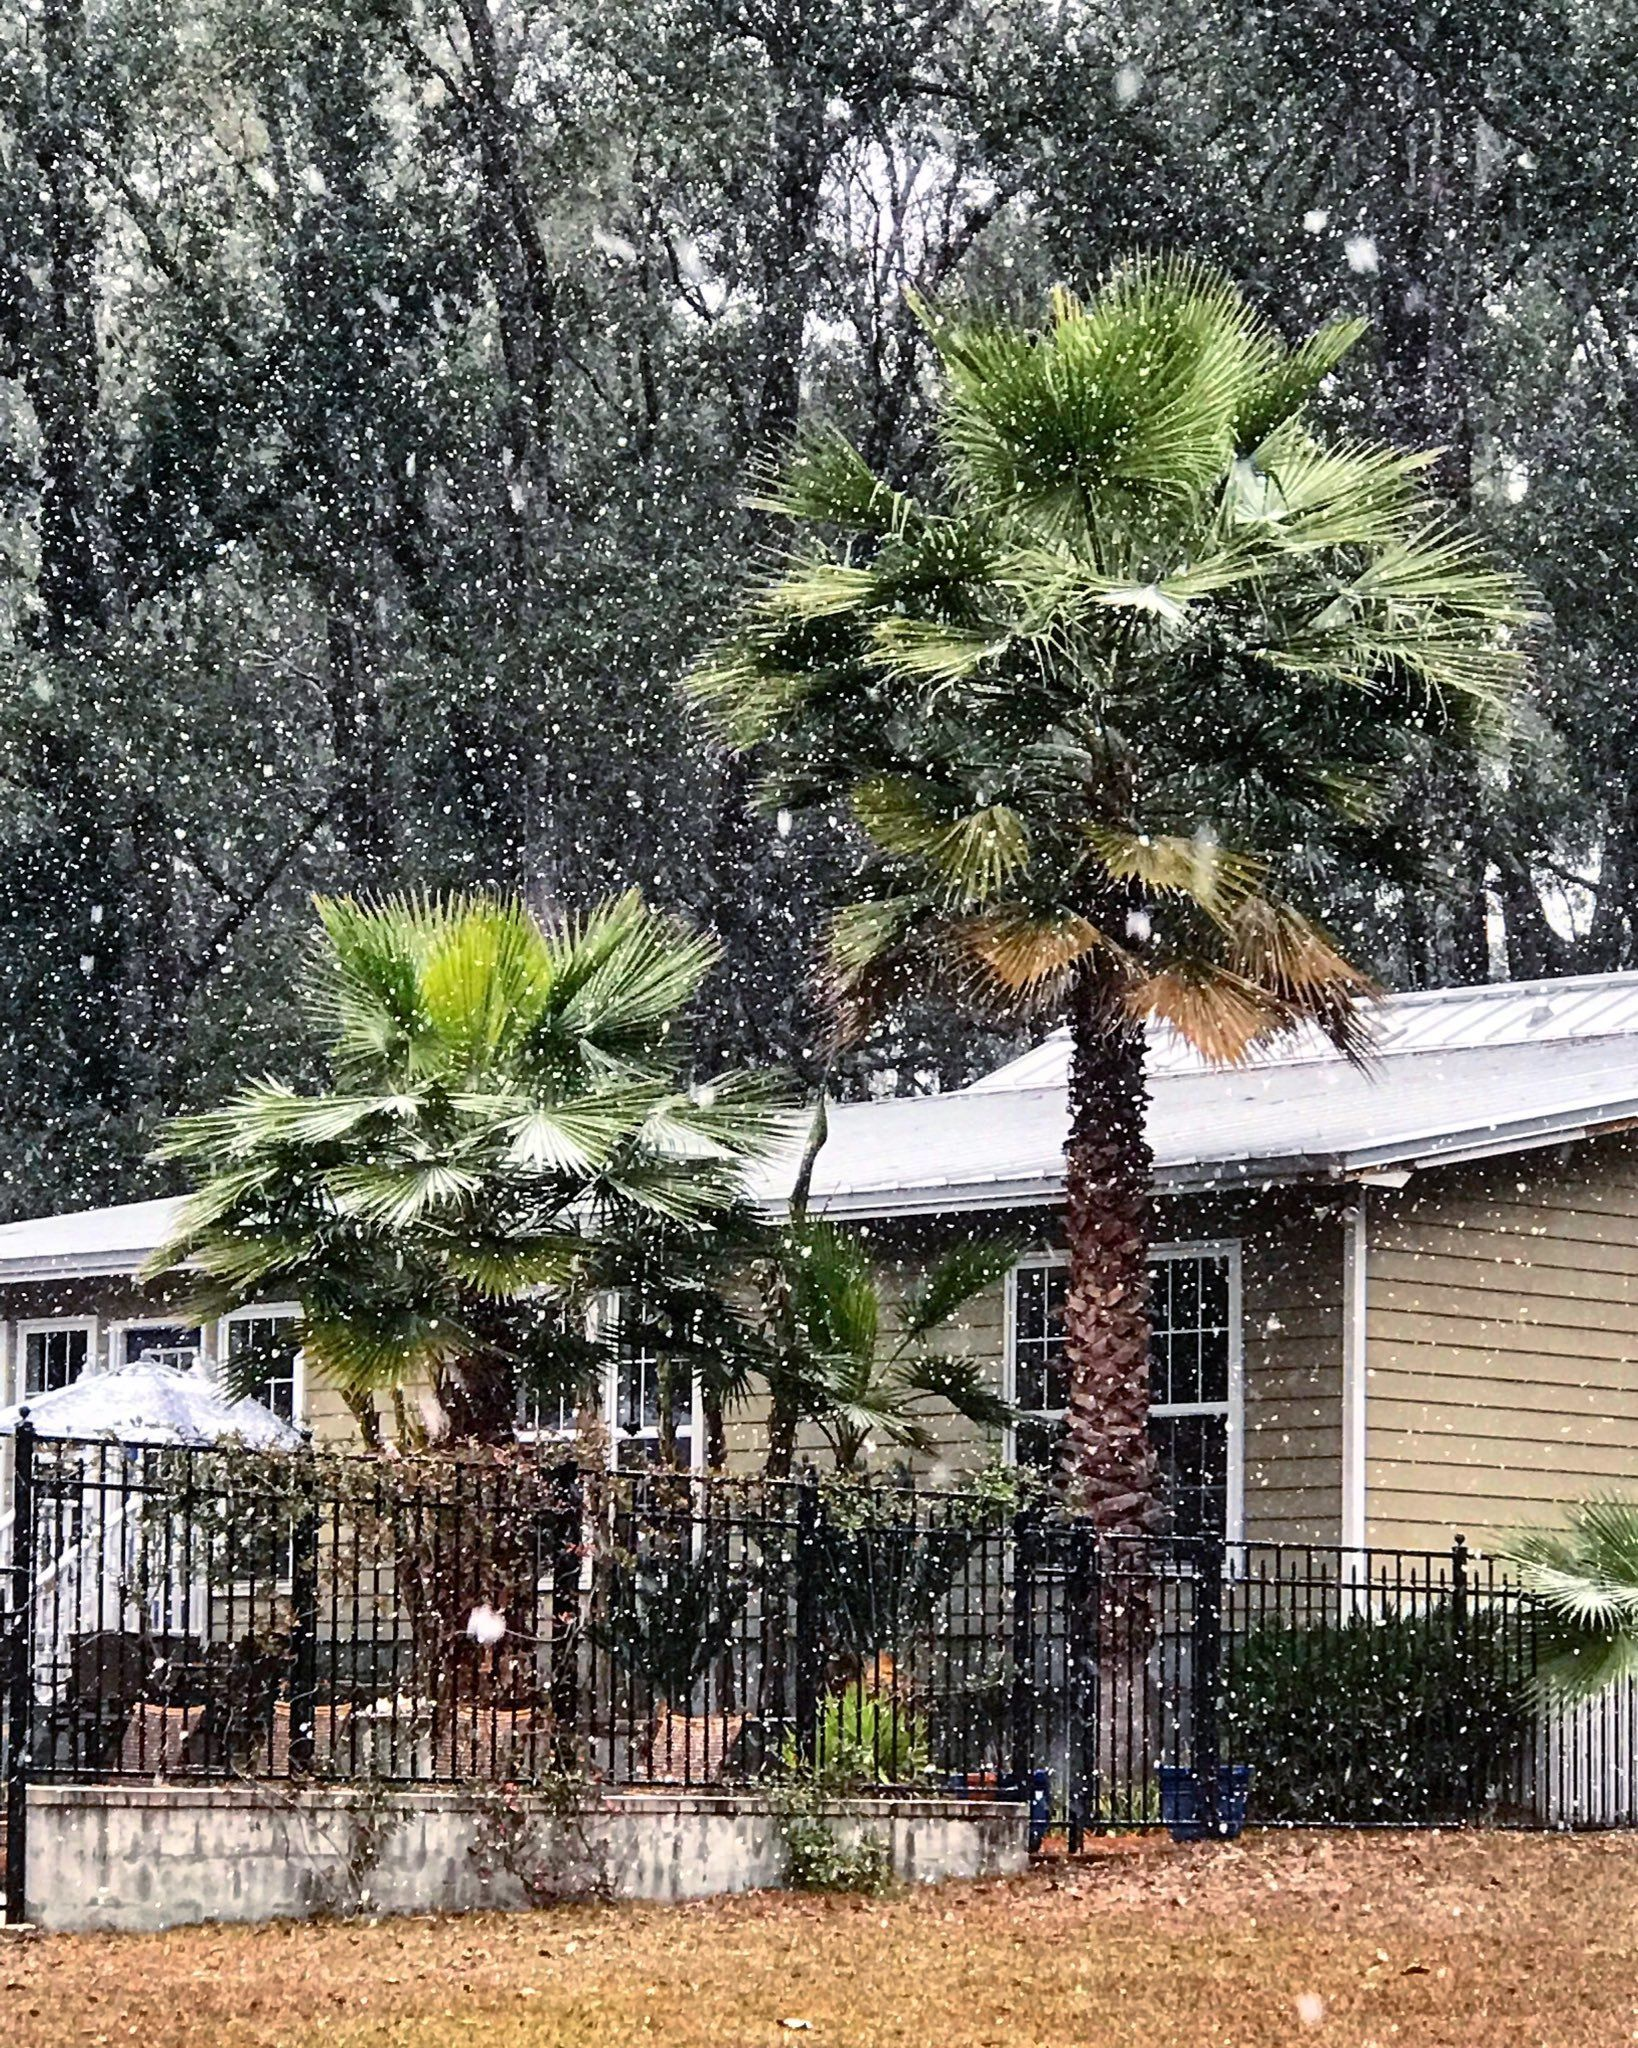 Florida sees snow for first time in 29 years